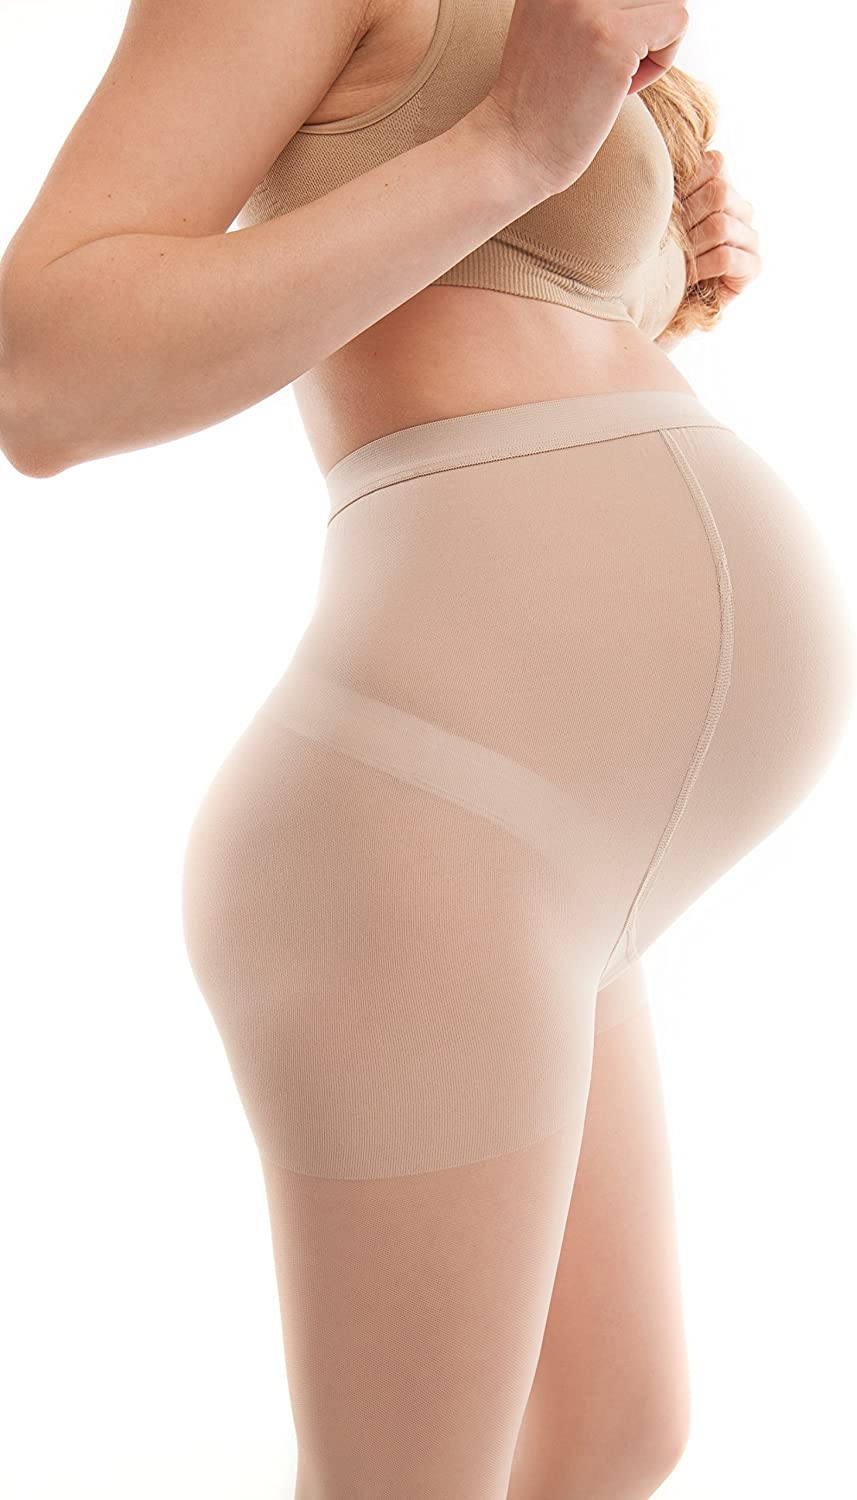 B000WFTBJY Gabrialla Graduated Compression Maternity Pantyhose, Sheer (18-20 mmHg) 71vw-HhgV5L